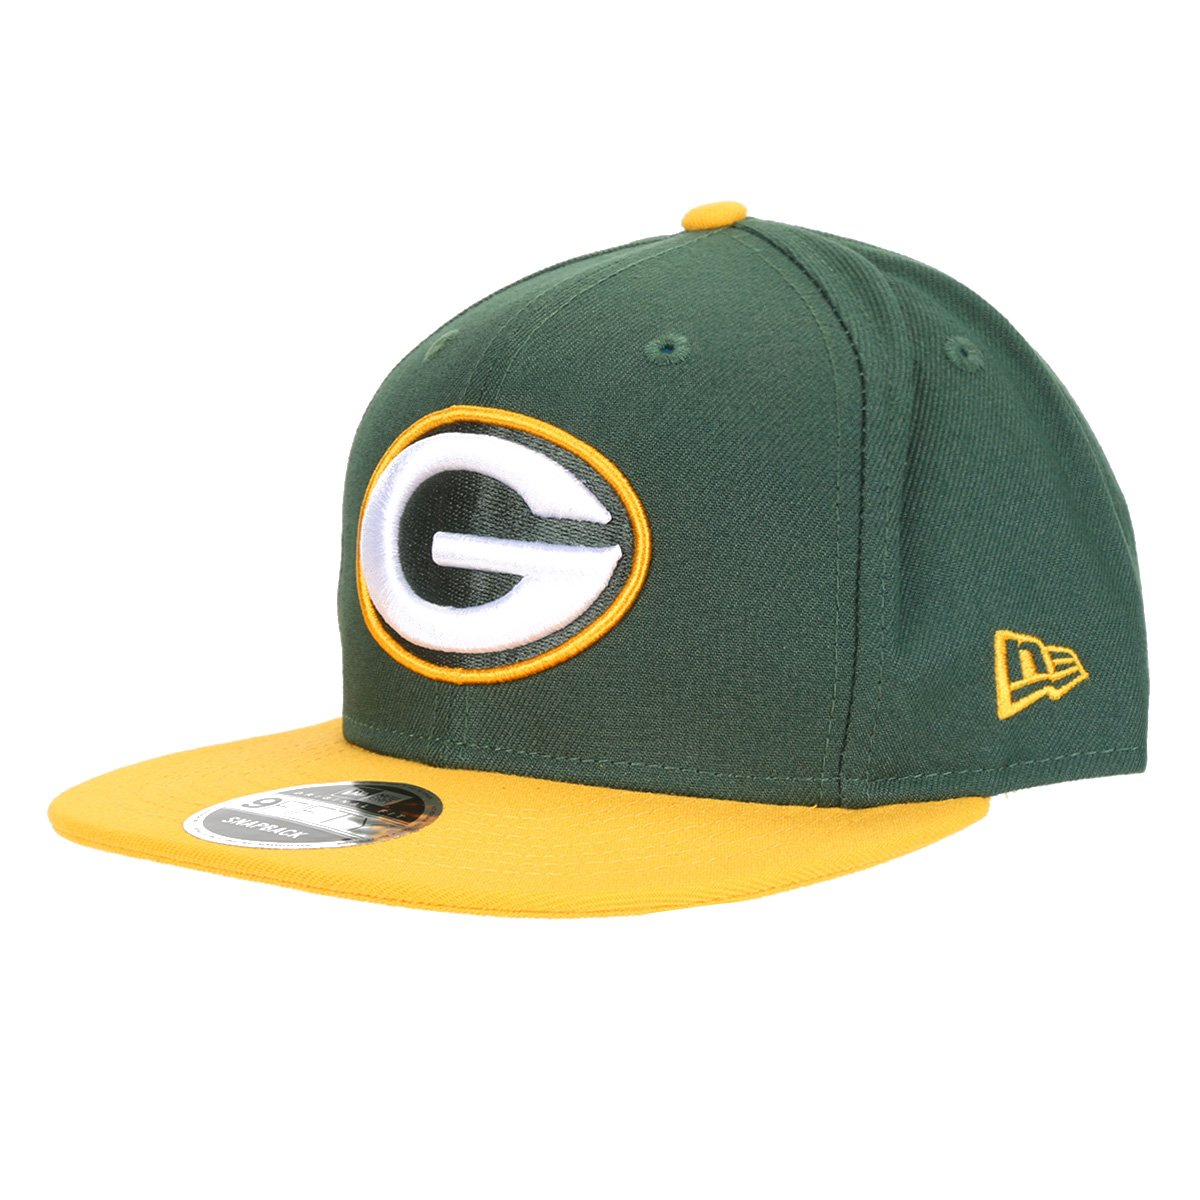 Boné New Era NFL Green Bay Packers Aba Reta Snapback 950 Of Sn Team Color